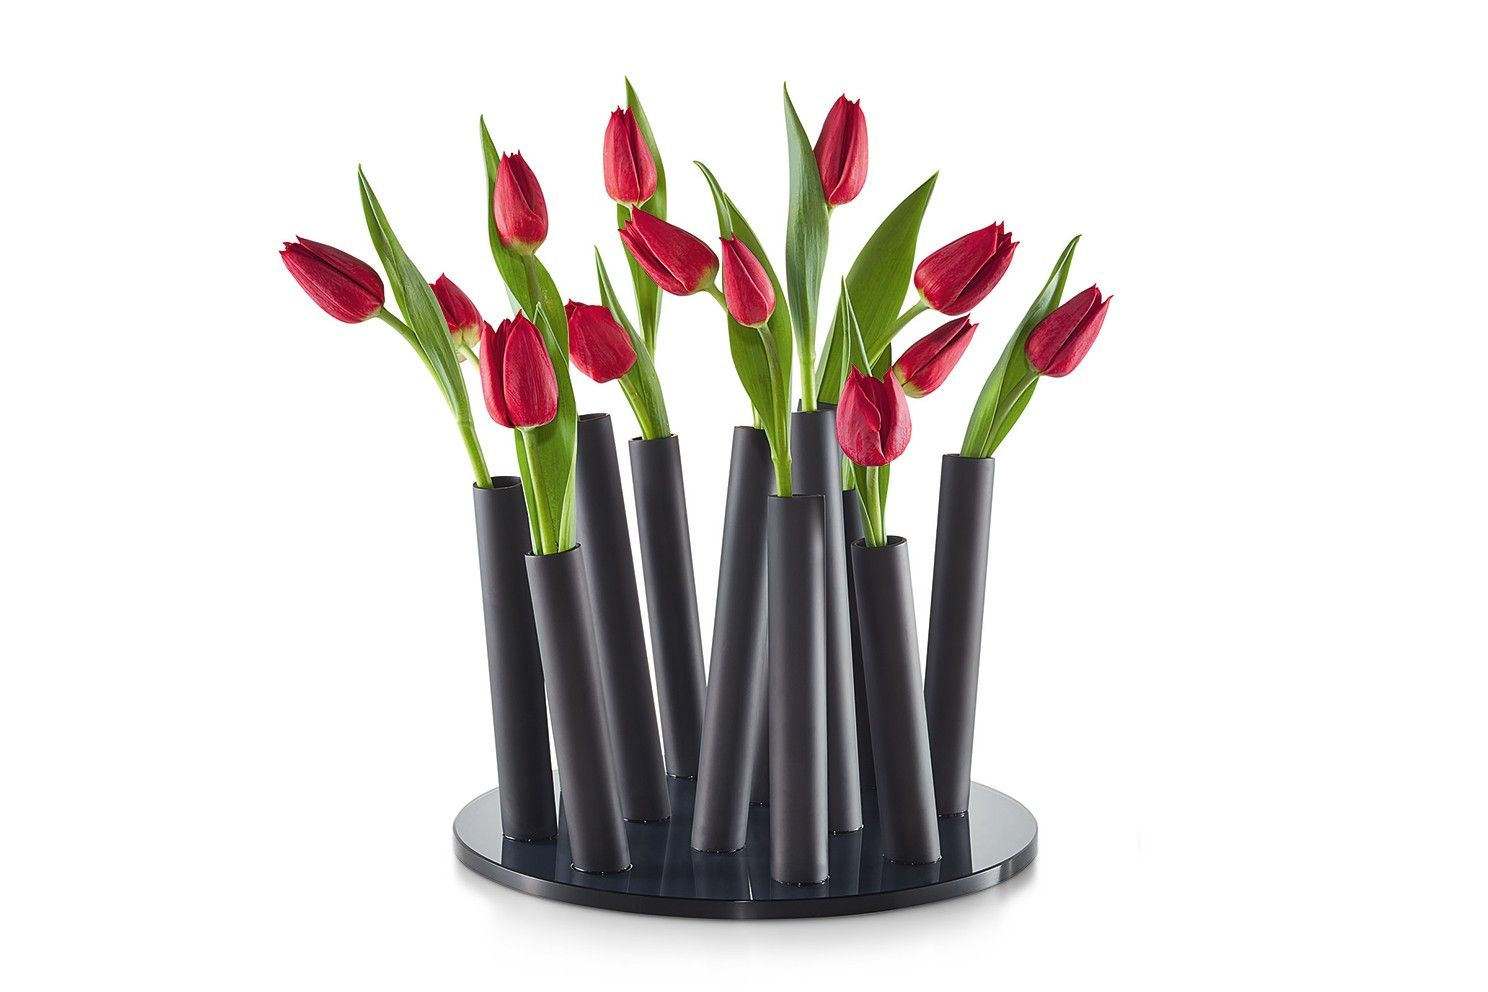 Attractive PHILIPPI   Bouquet Flower Vase #philippi #bouquetflowervase #vase #flowers  #retail # Nice Look